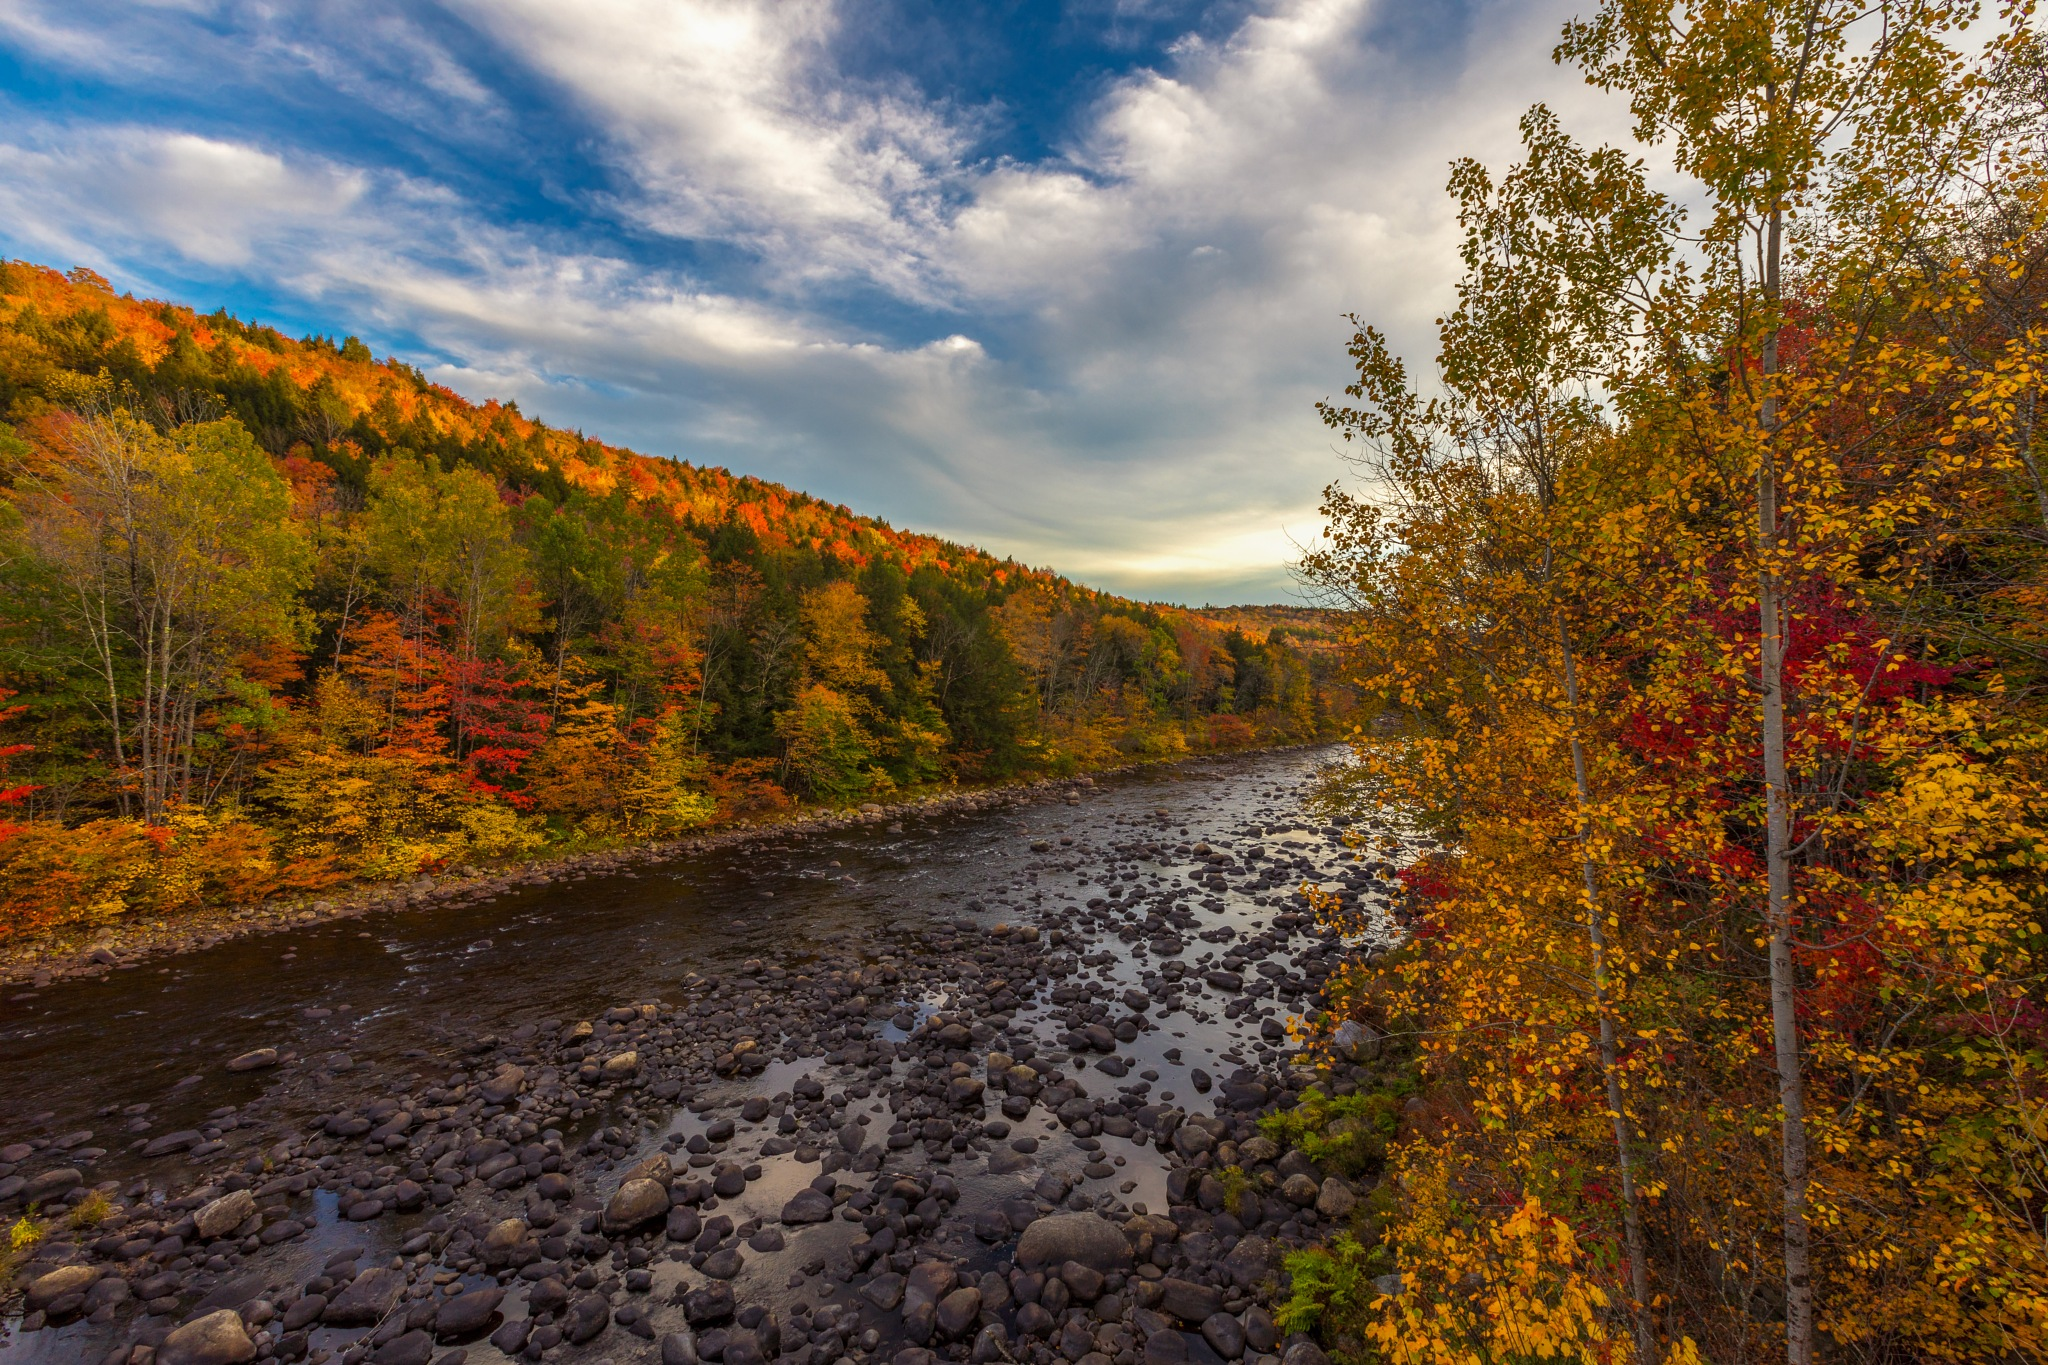 The color of Fall by Dominick Chiuchiolo